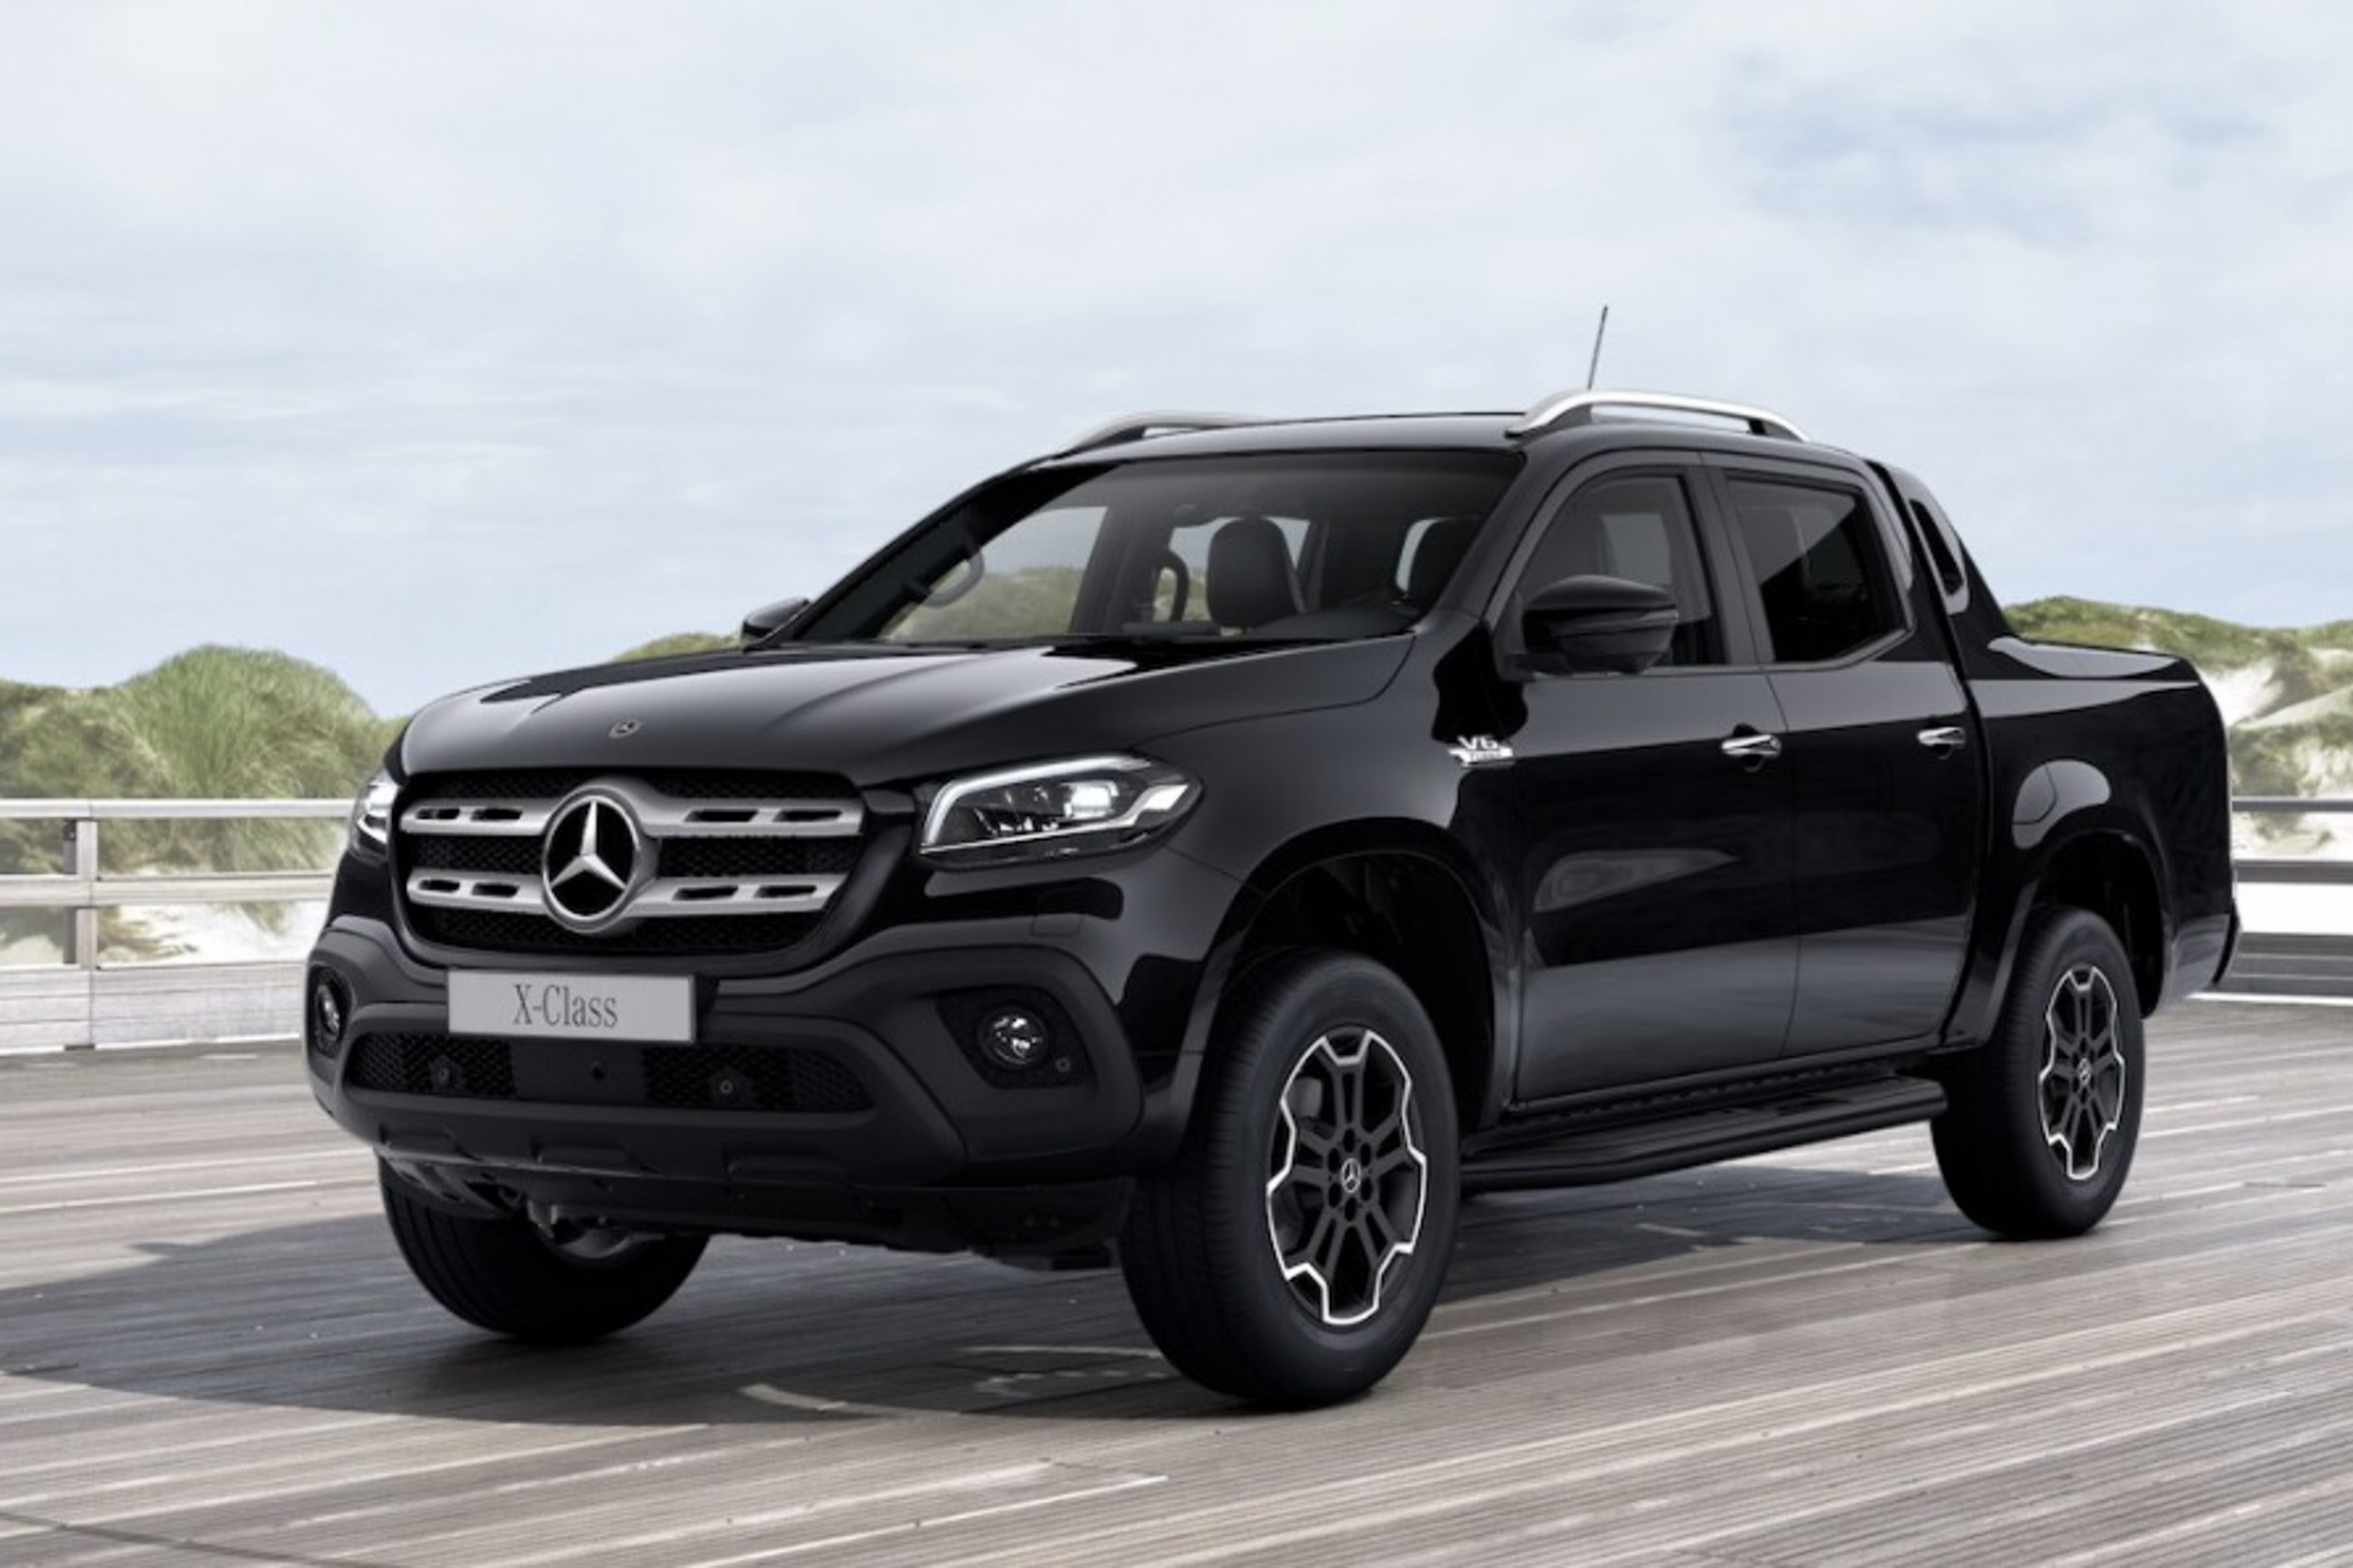 7 Mercedes-Benz X-Class looks mean in all-black - Auto News - 2020 mercedes x